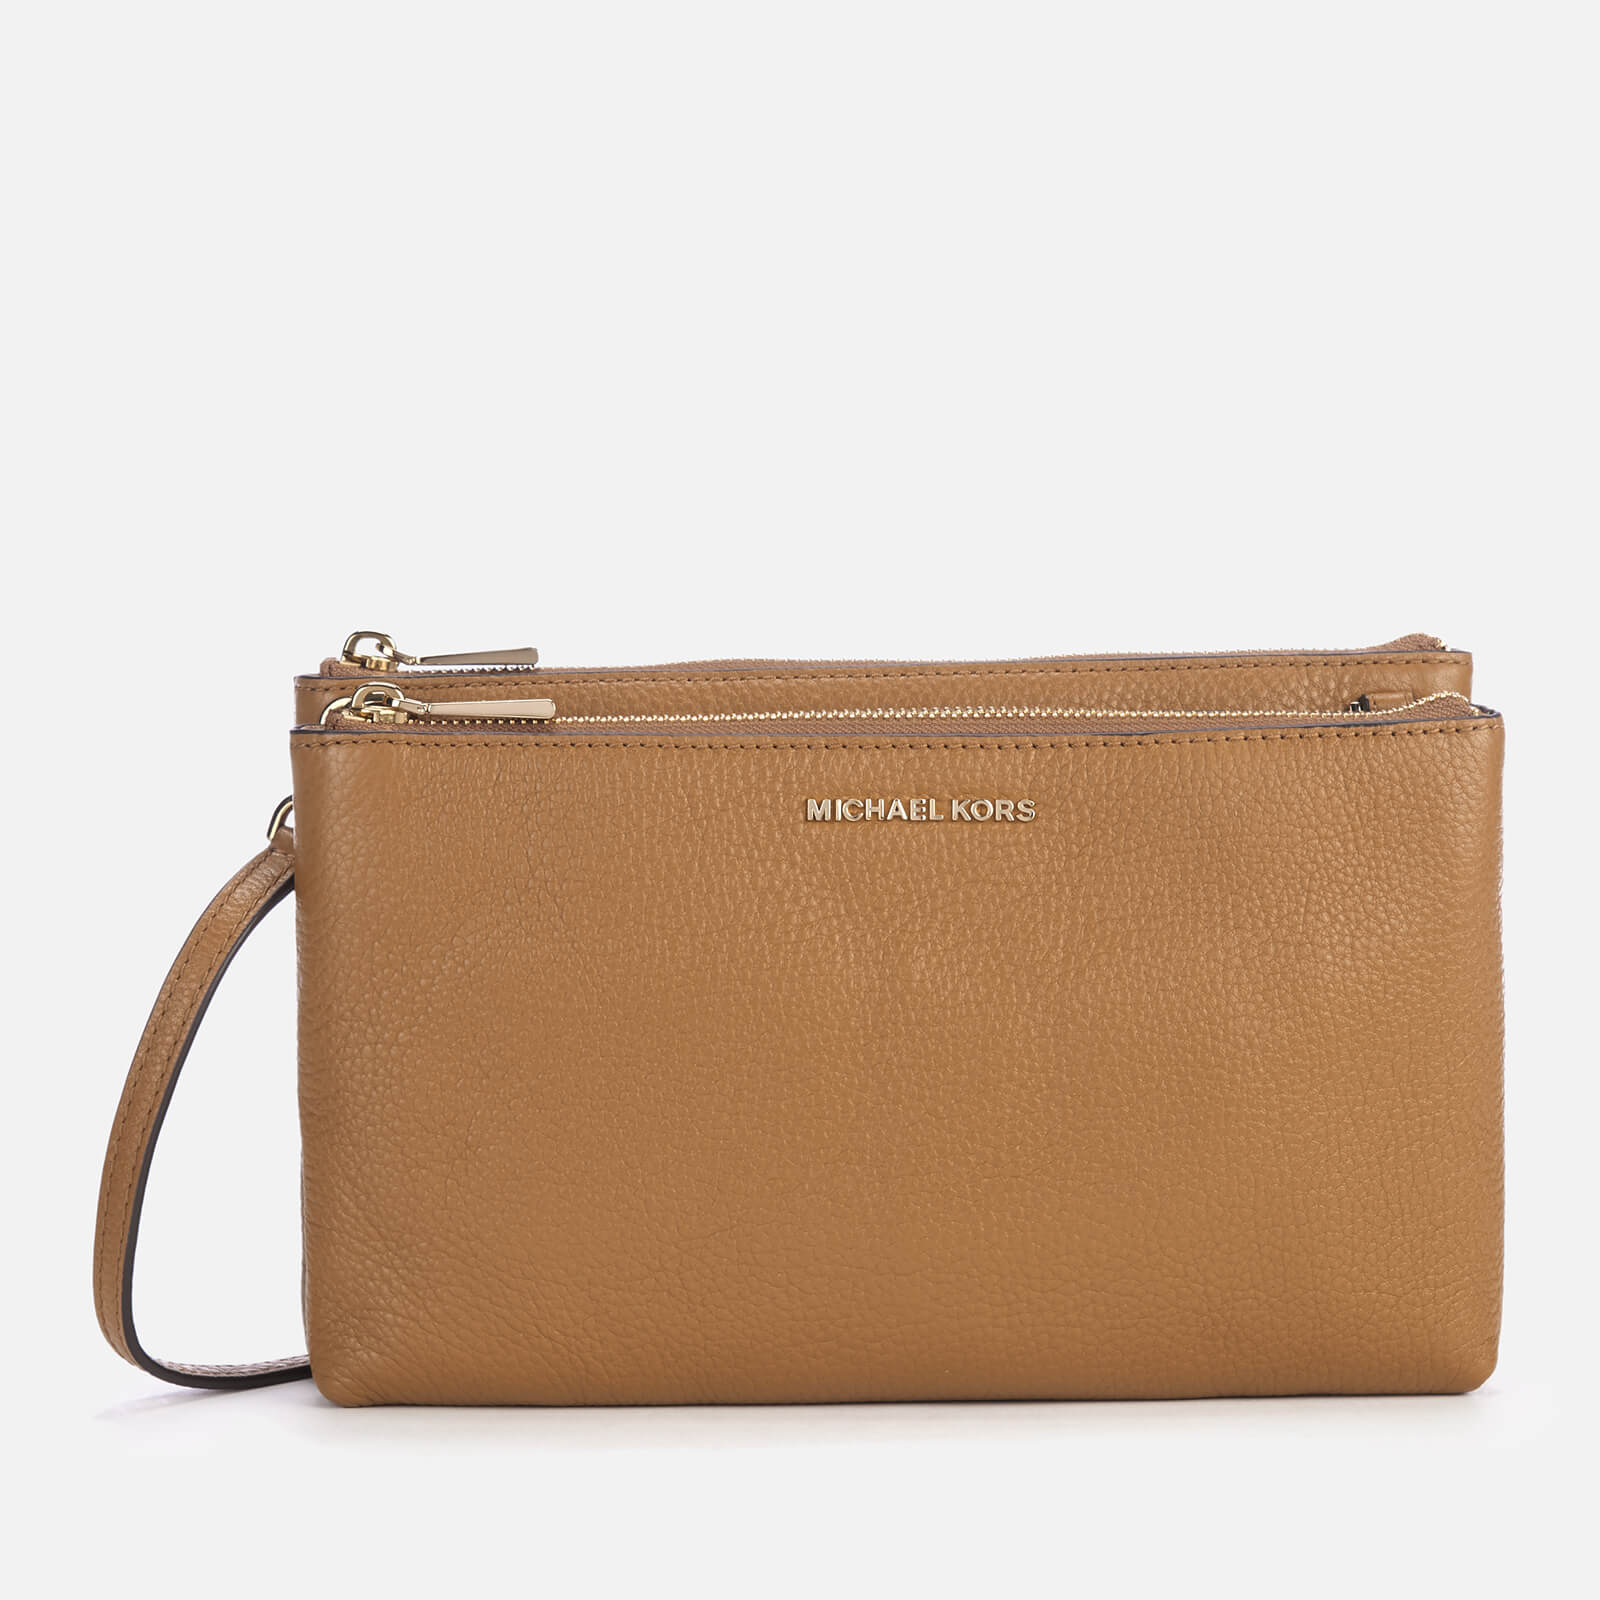 ceee566c8306 MICHAEL MICHAEL KORS Women's Double Zip Cross Cross Body Bag - Acorn  Clothing | TheHut.com